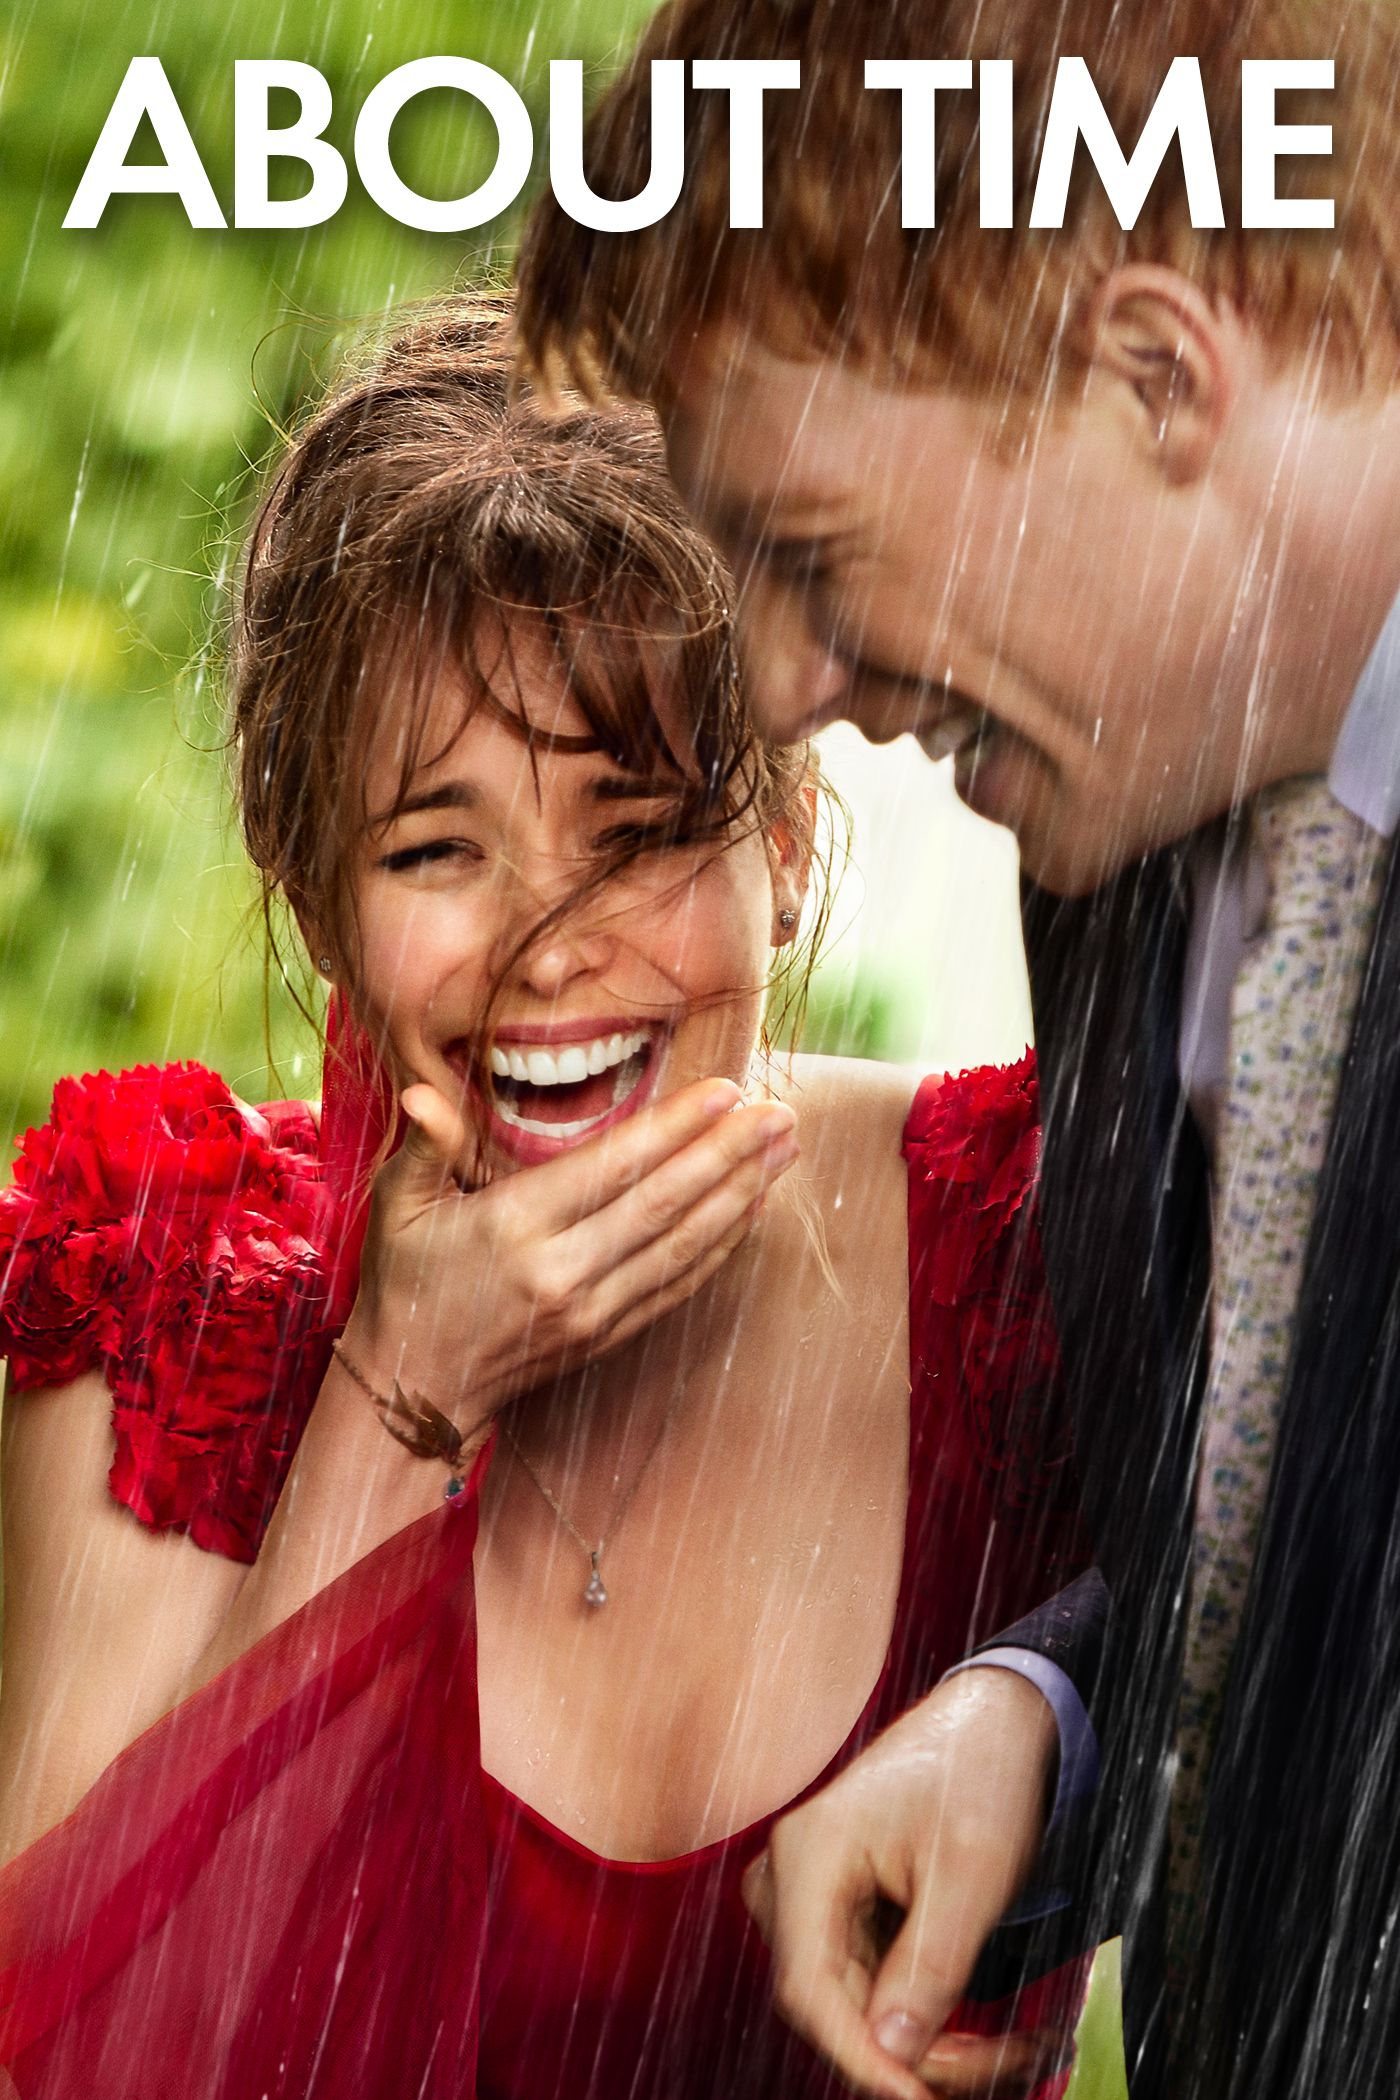 About Time. Surprisingly good movie. Makes you think. If